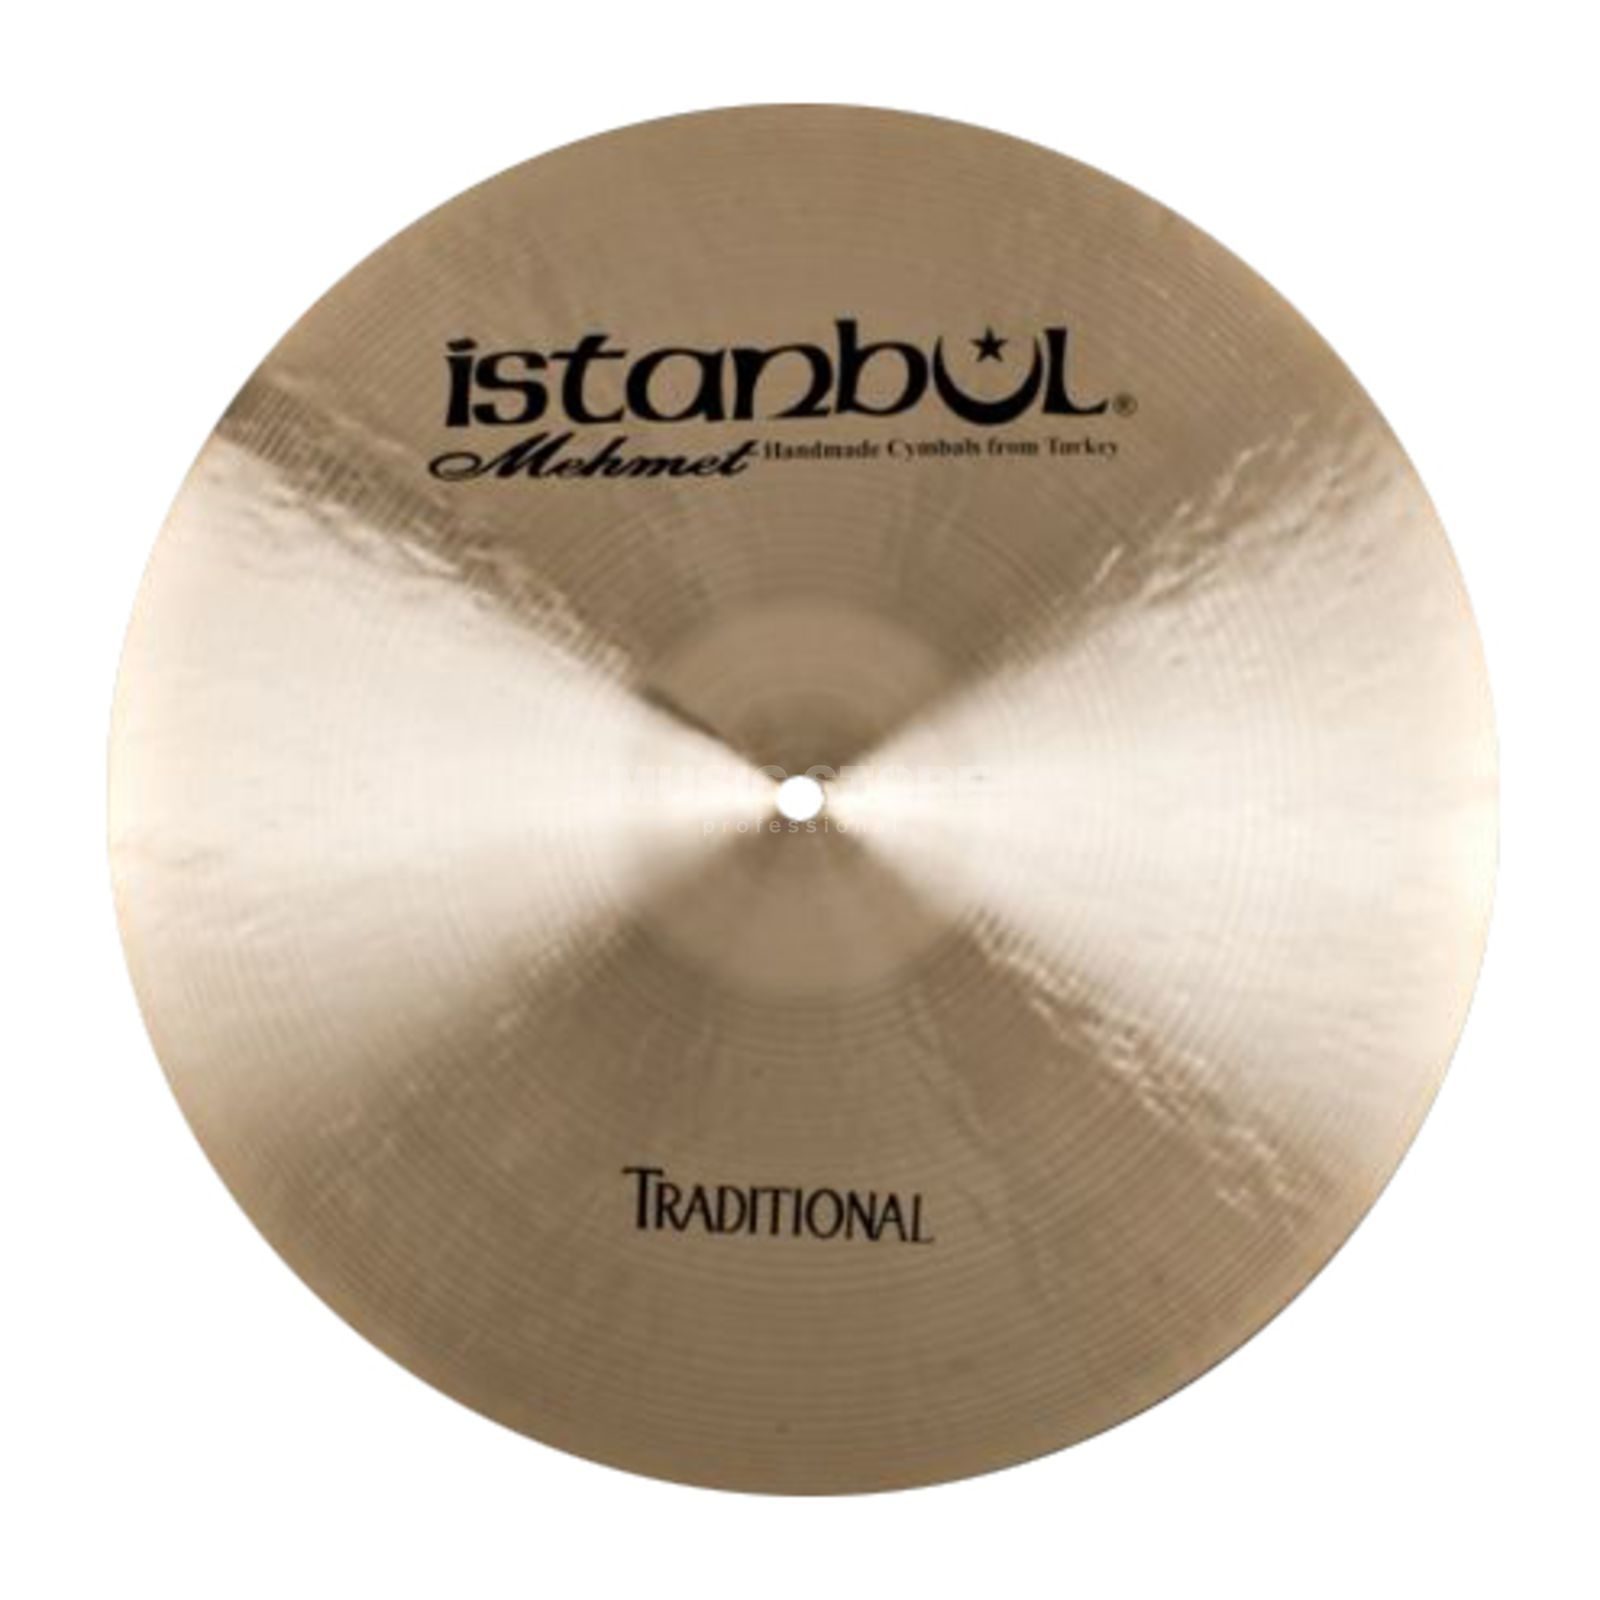 "Istanbul Traditional Dark Crash 16"", CD17 Immagine prodotto"